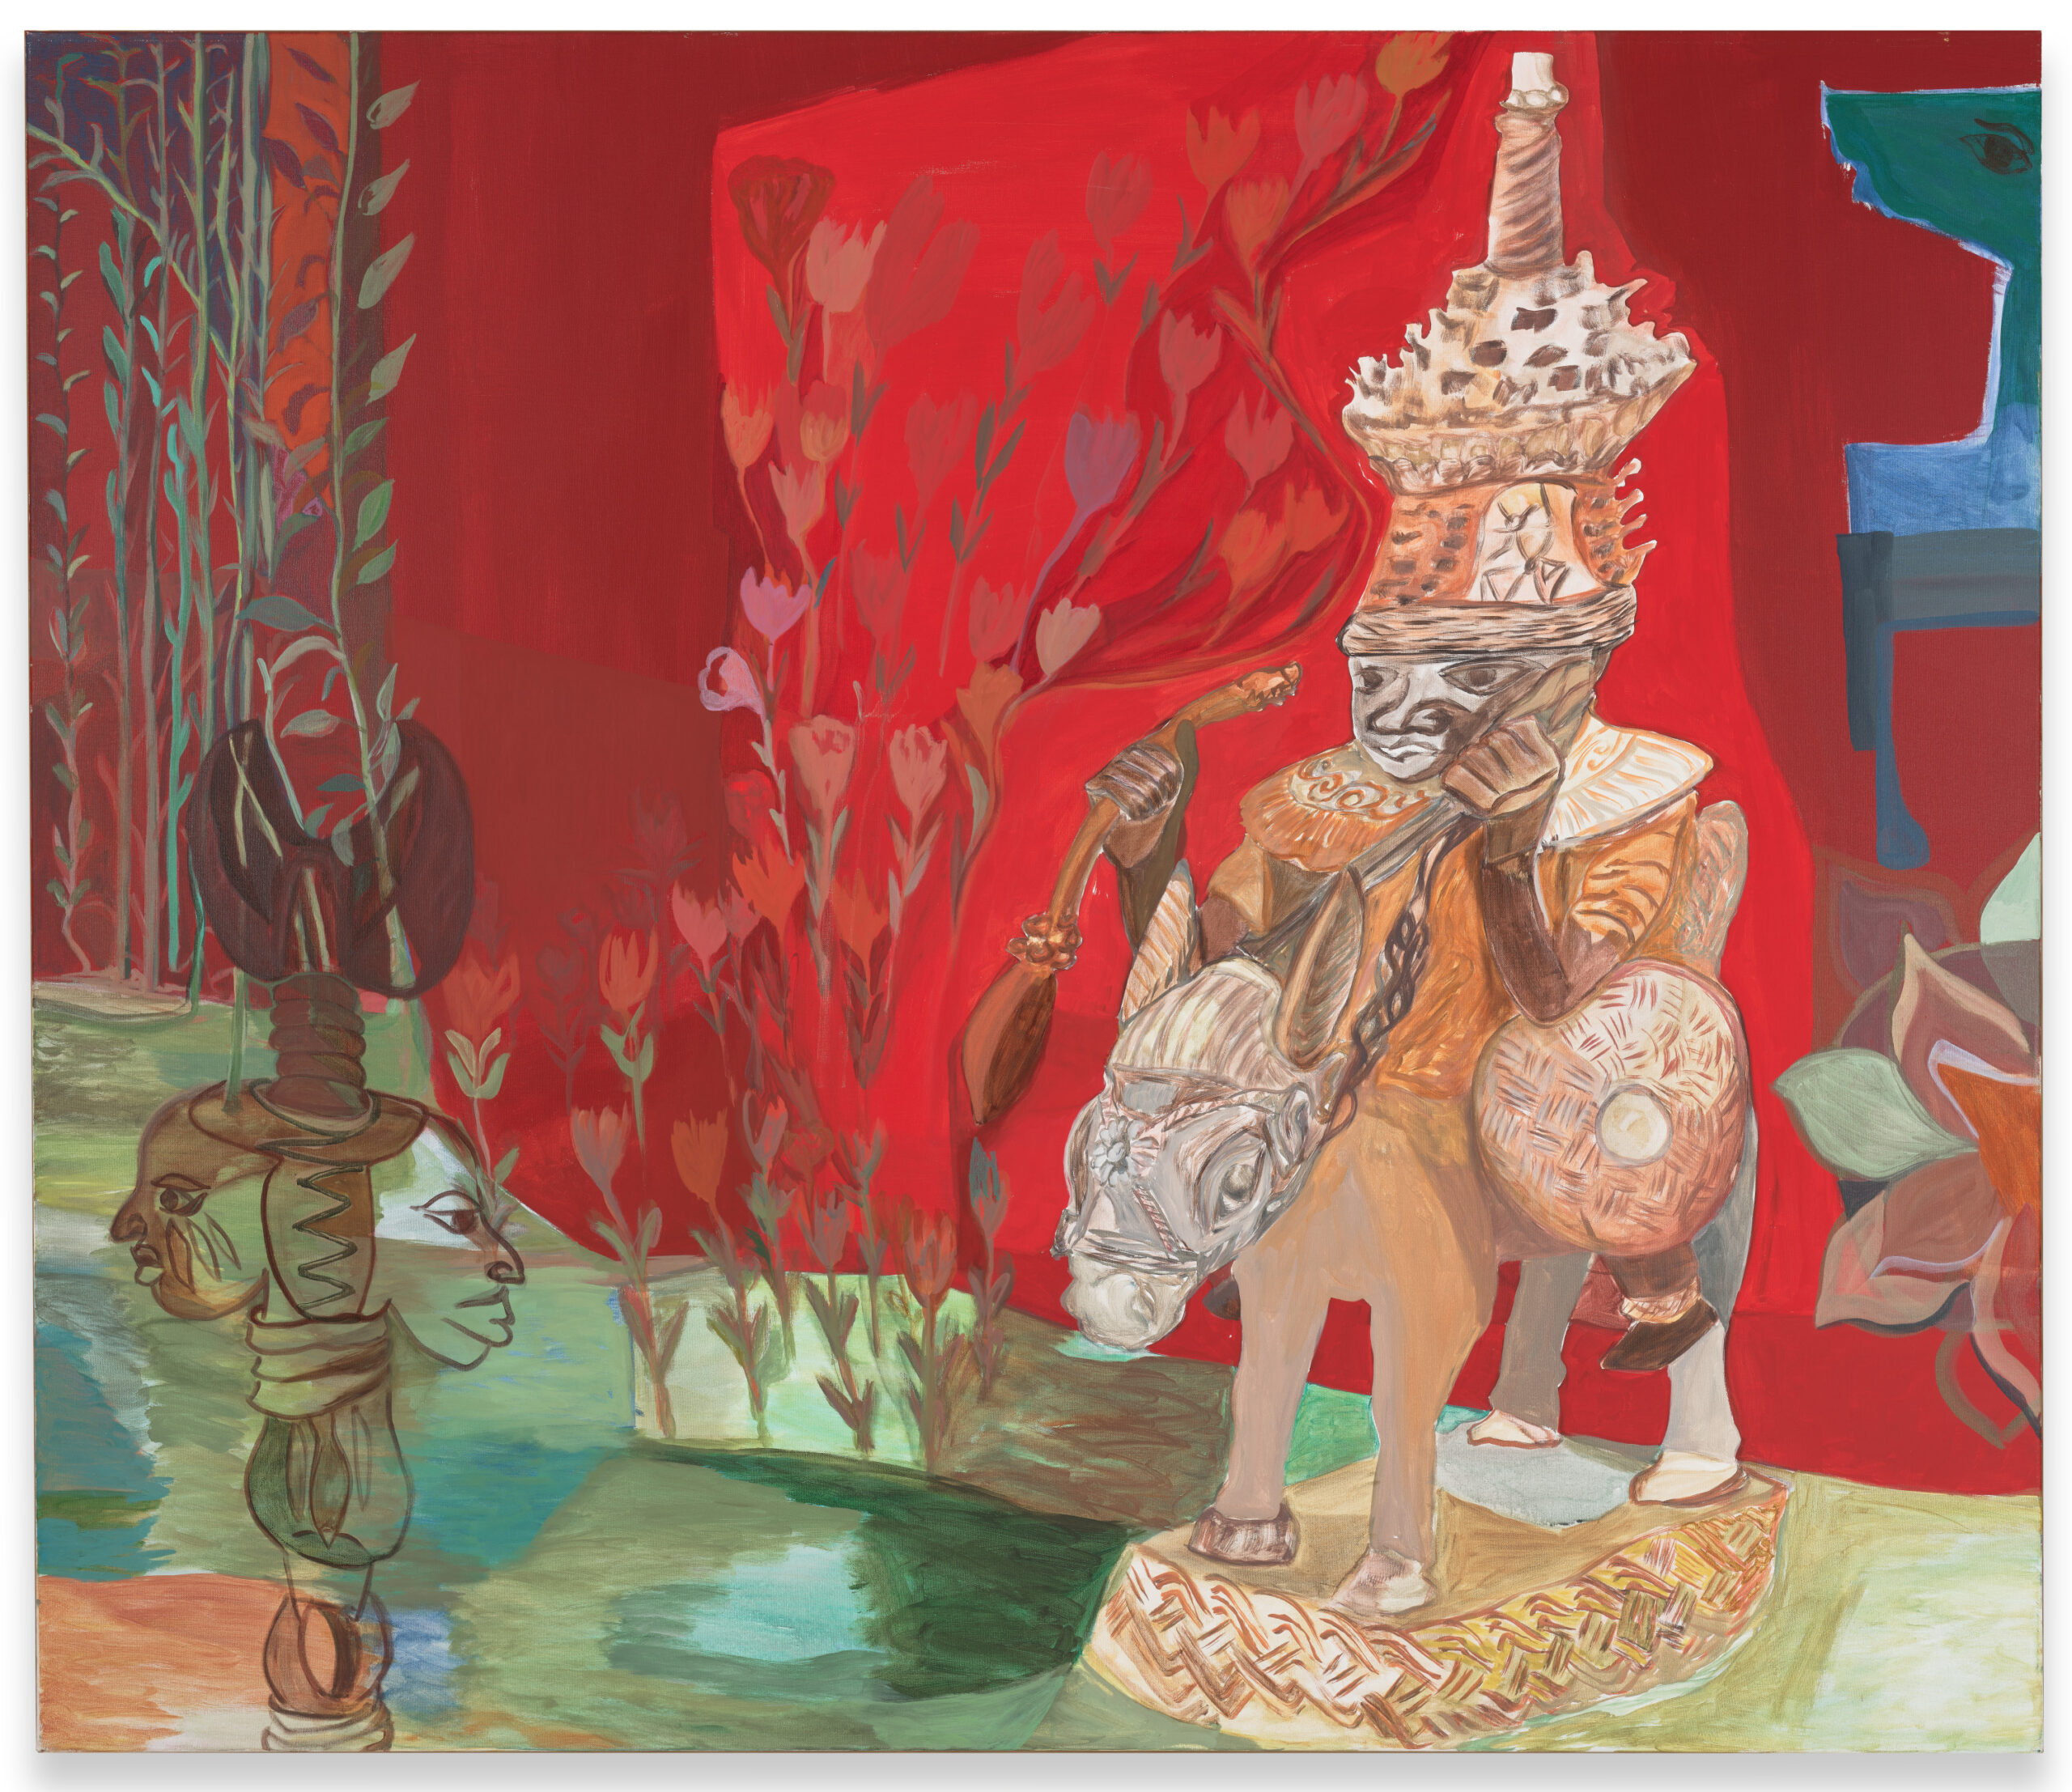 BMA Announces 175 New Acquisitions for its Collectionas well as a Promised Gift of 90 Artworks from Longtime Museum Supporters Nancy Dorman and Stanley Mazaroff